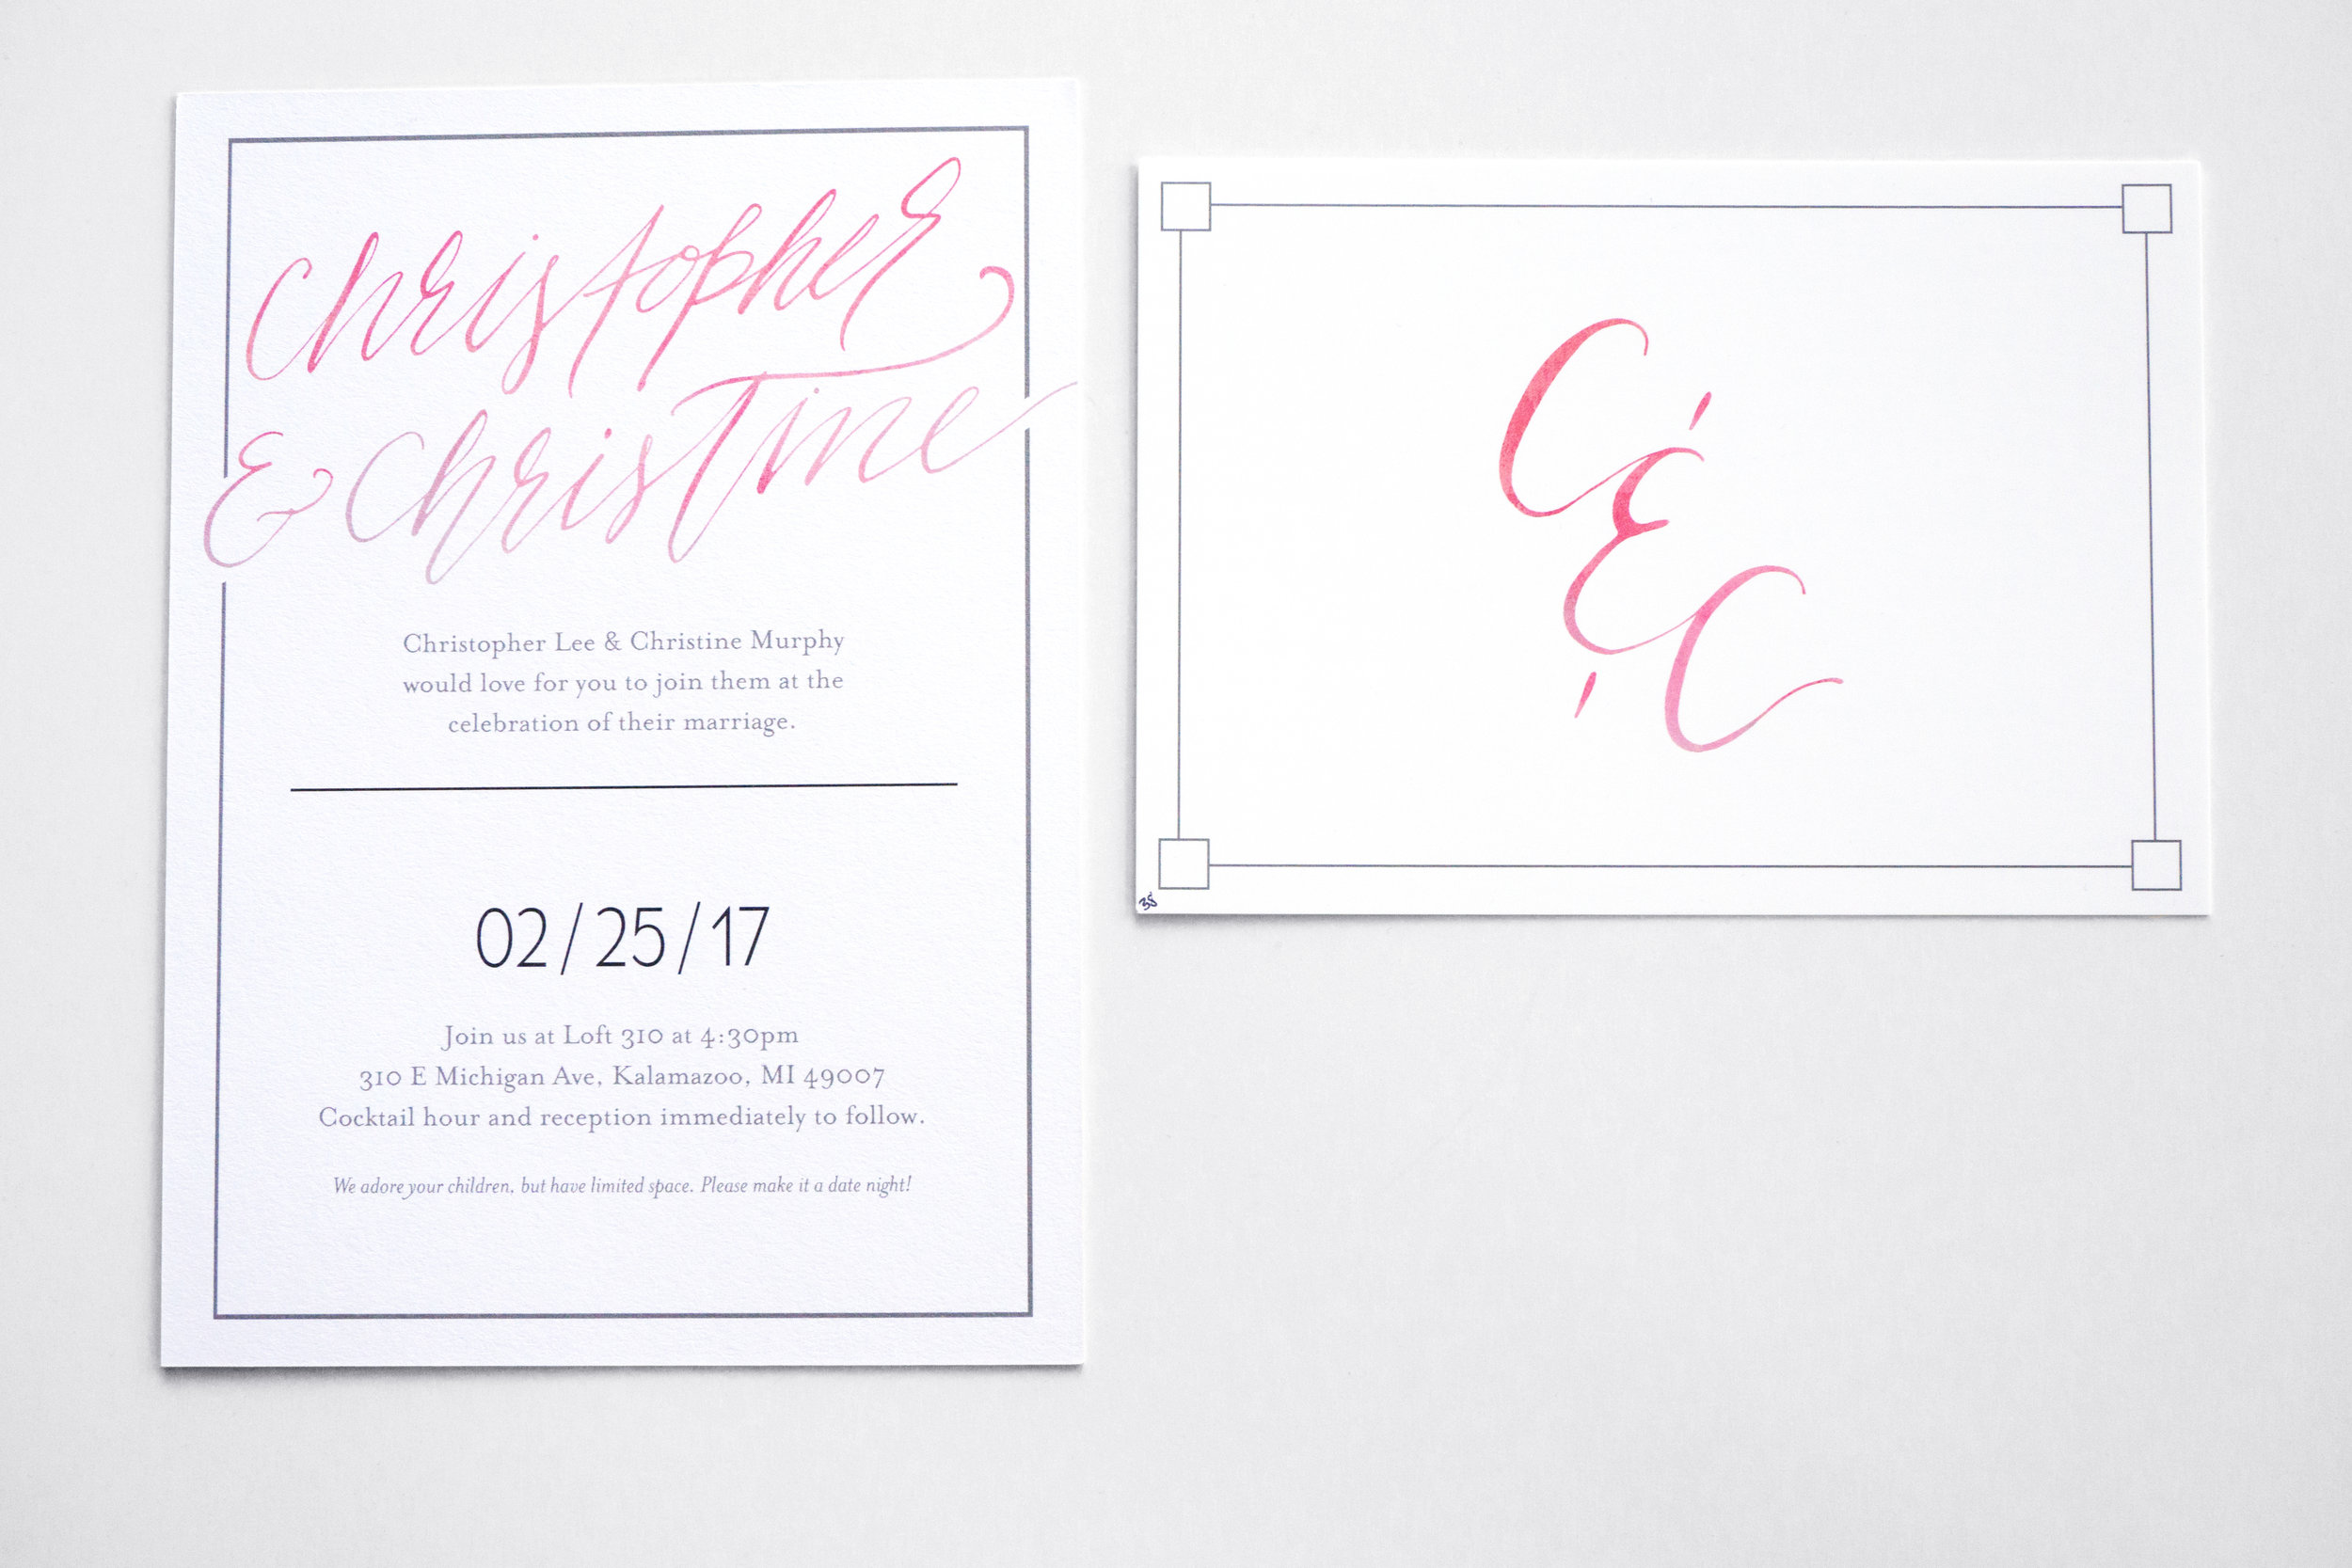 abbyabbyabby-Lee Wedding-Invitations-2.jpg